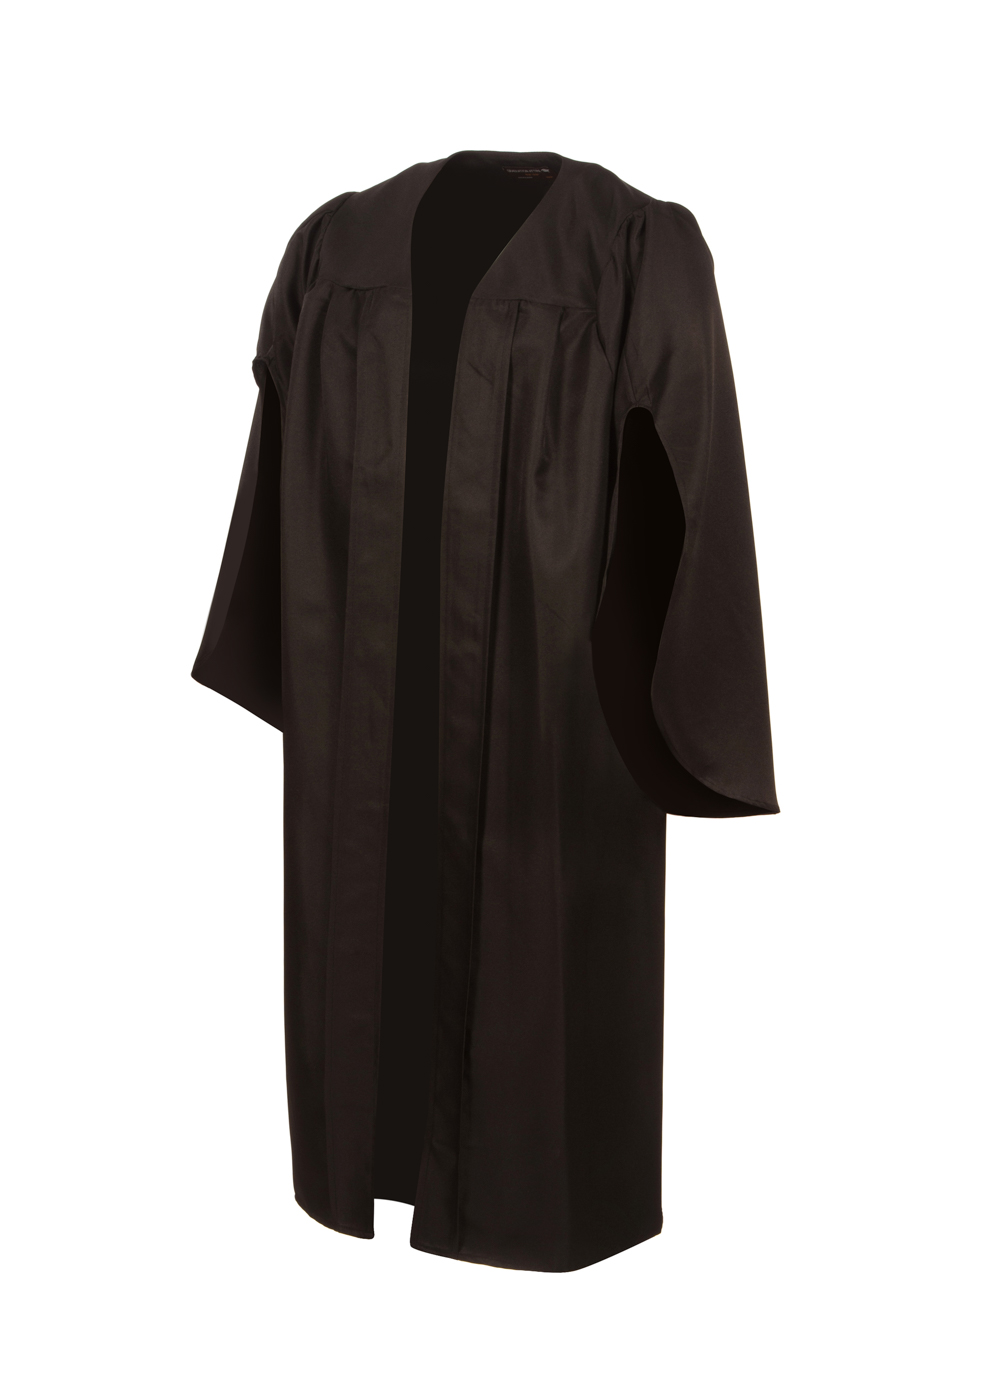 Graduation Gowns | Graduation Attire